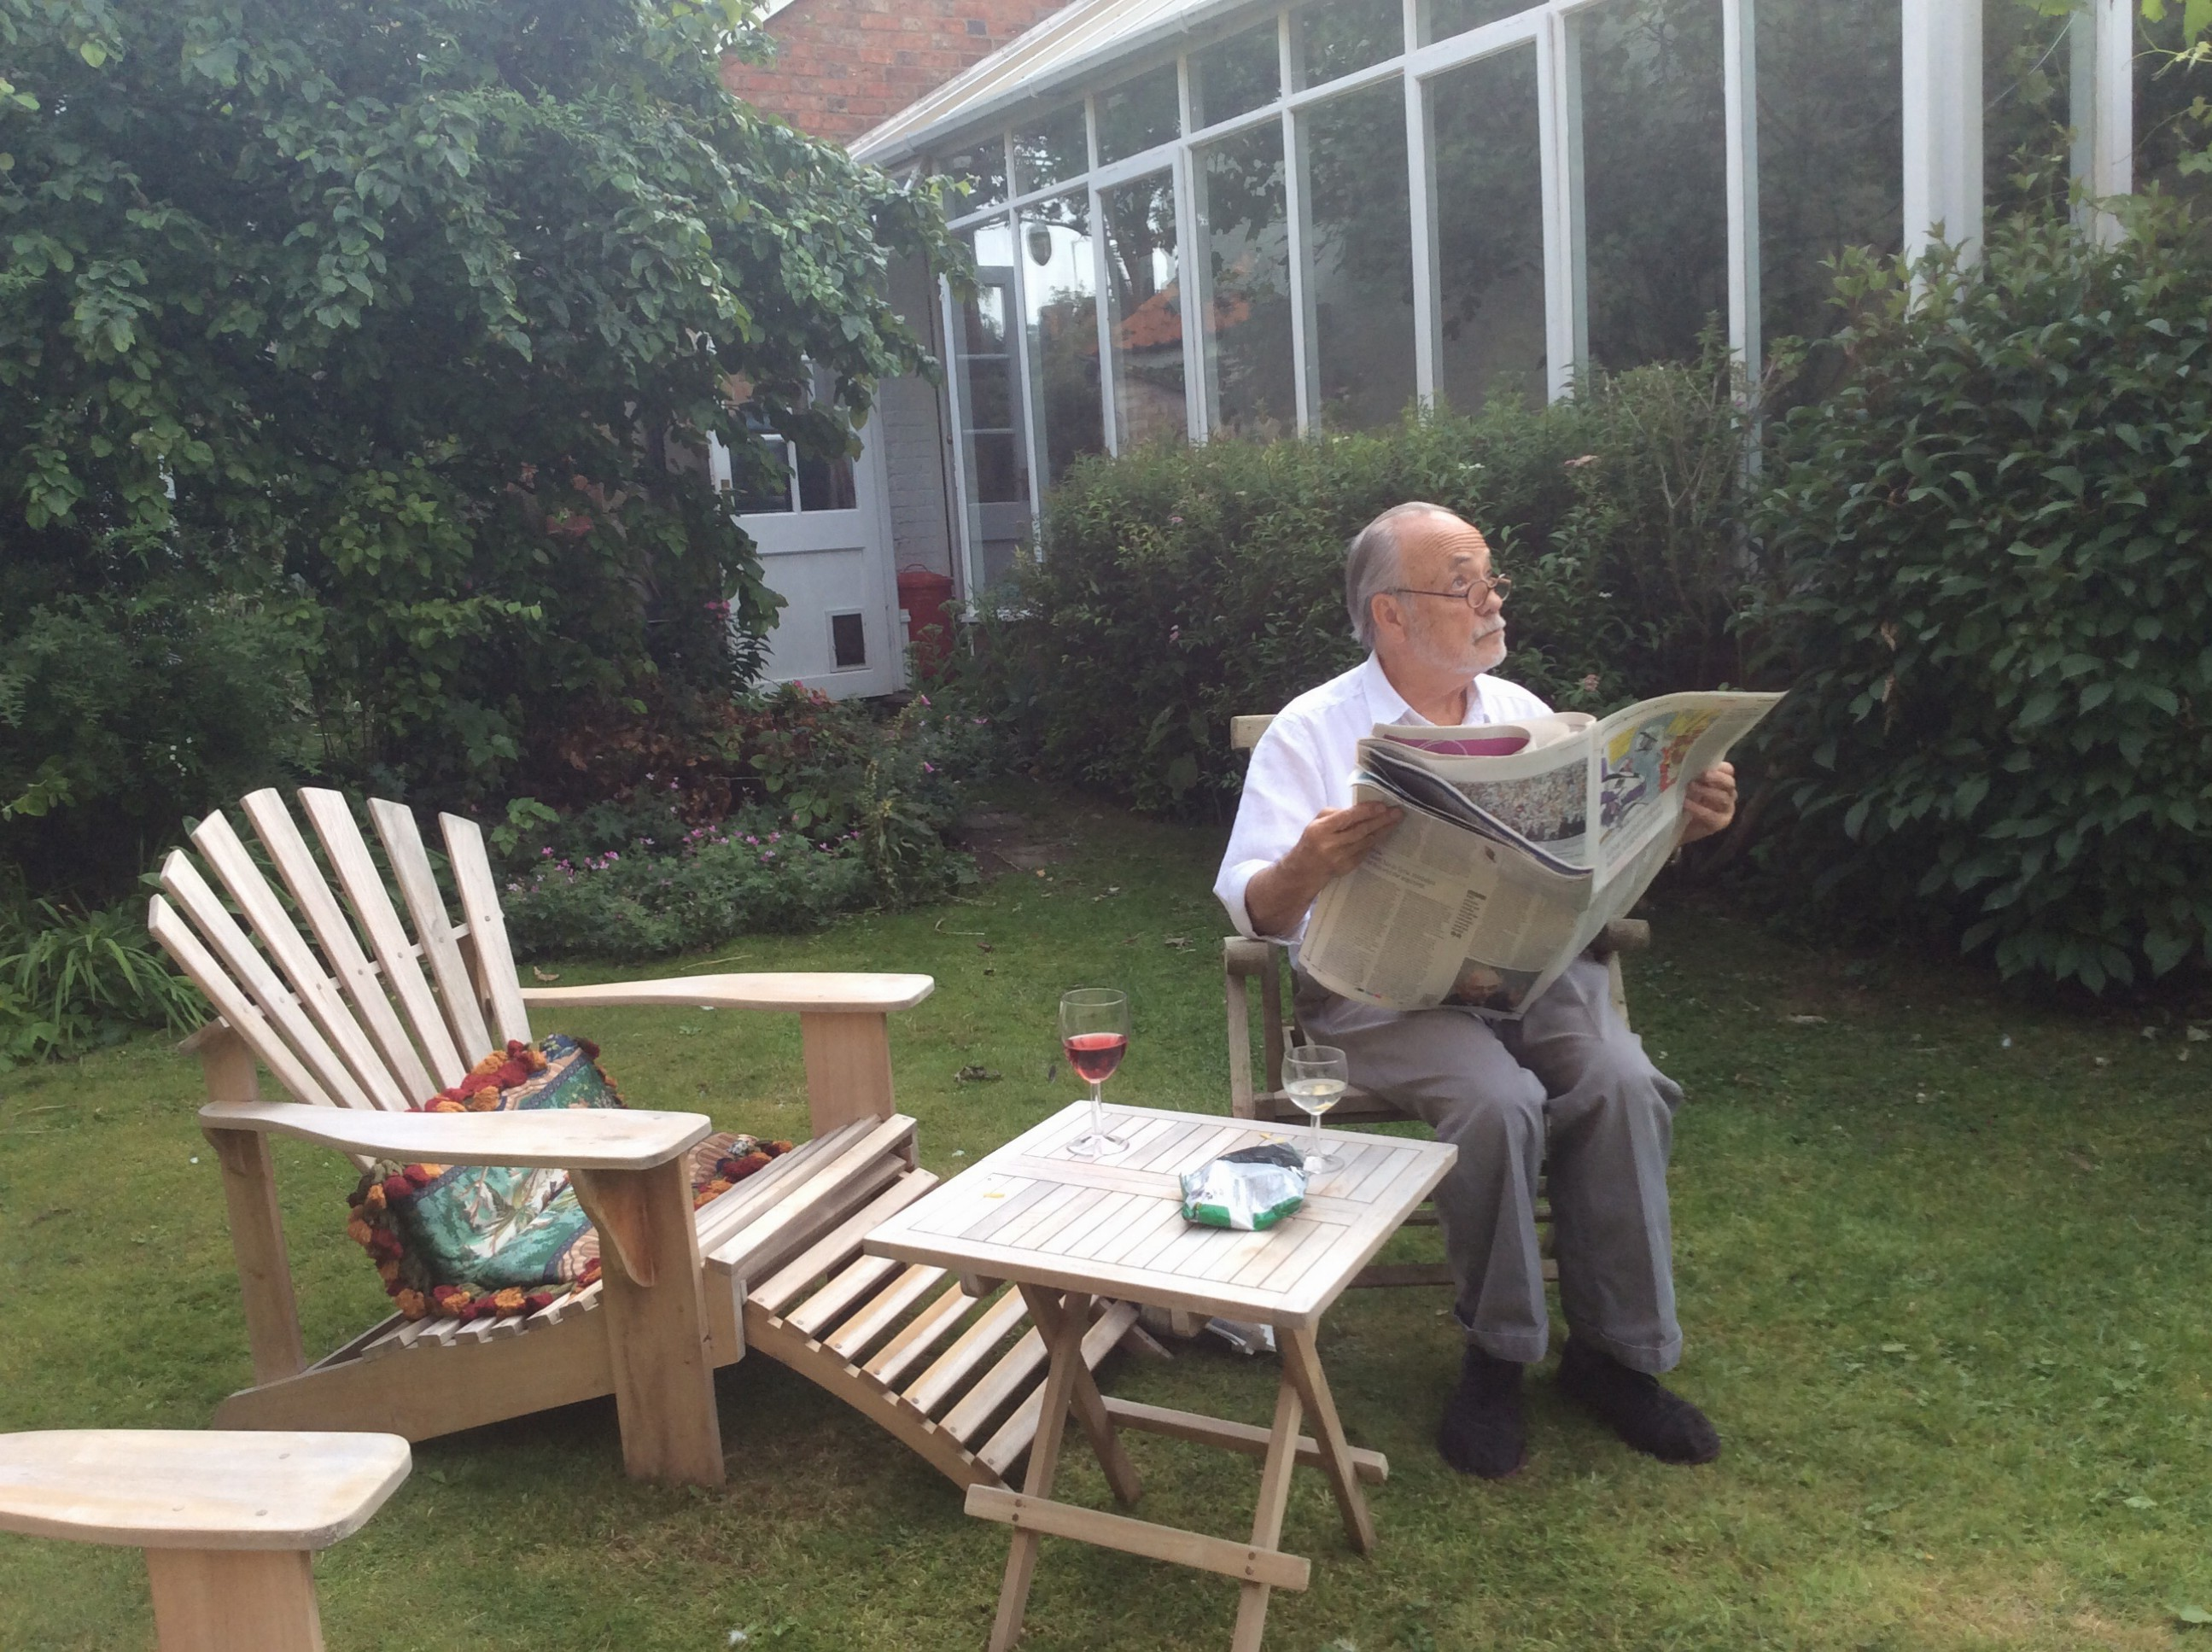 Jim consults the heavens while reading The Guardian